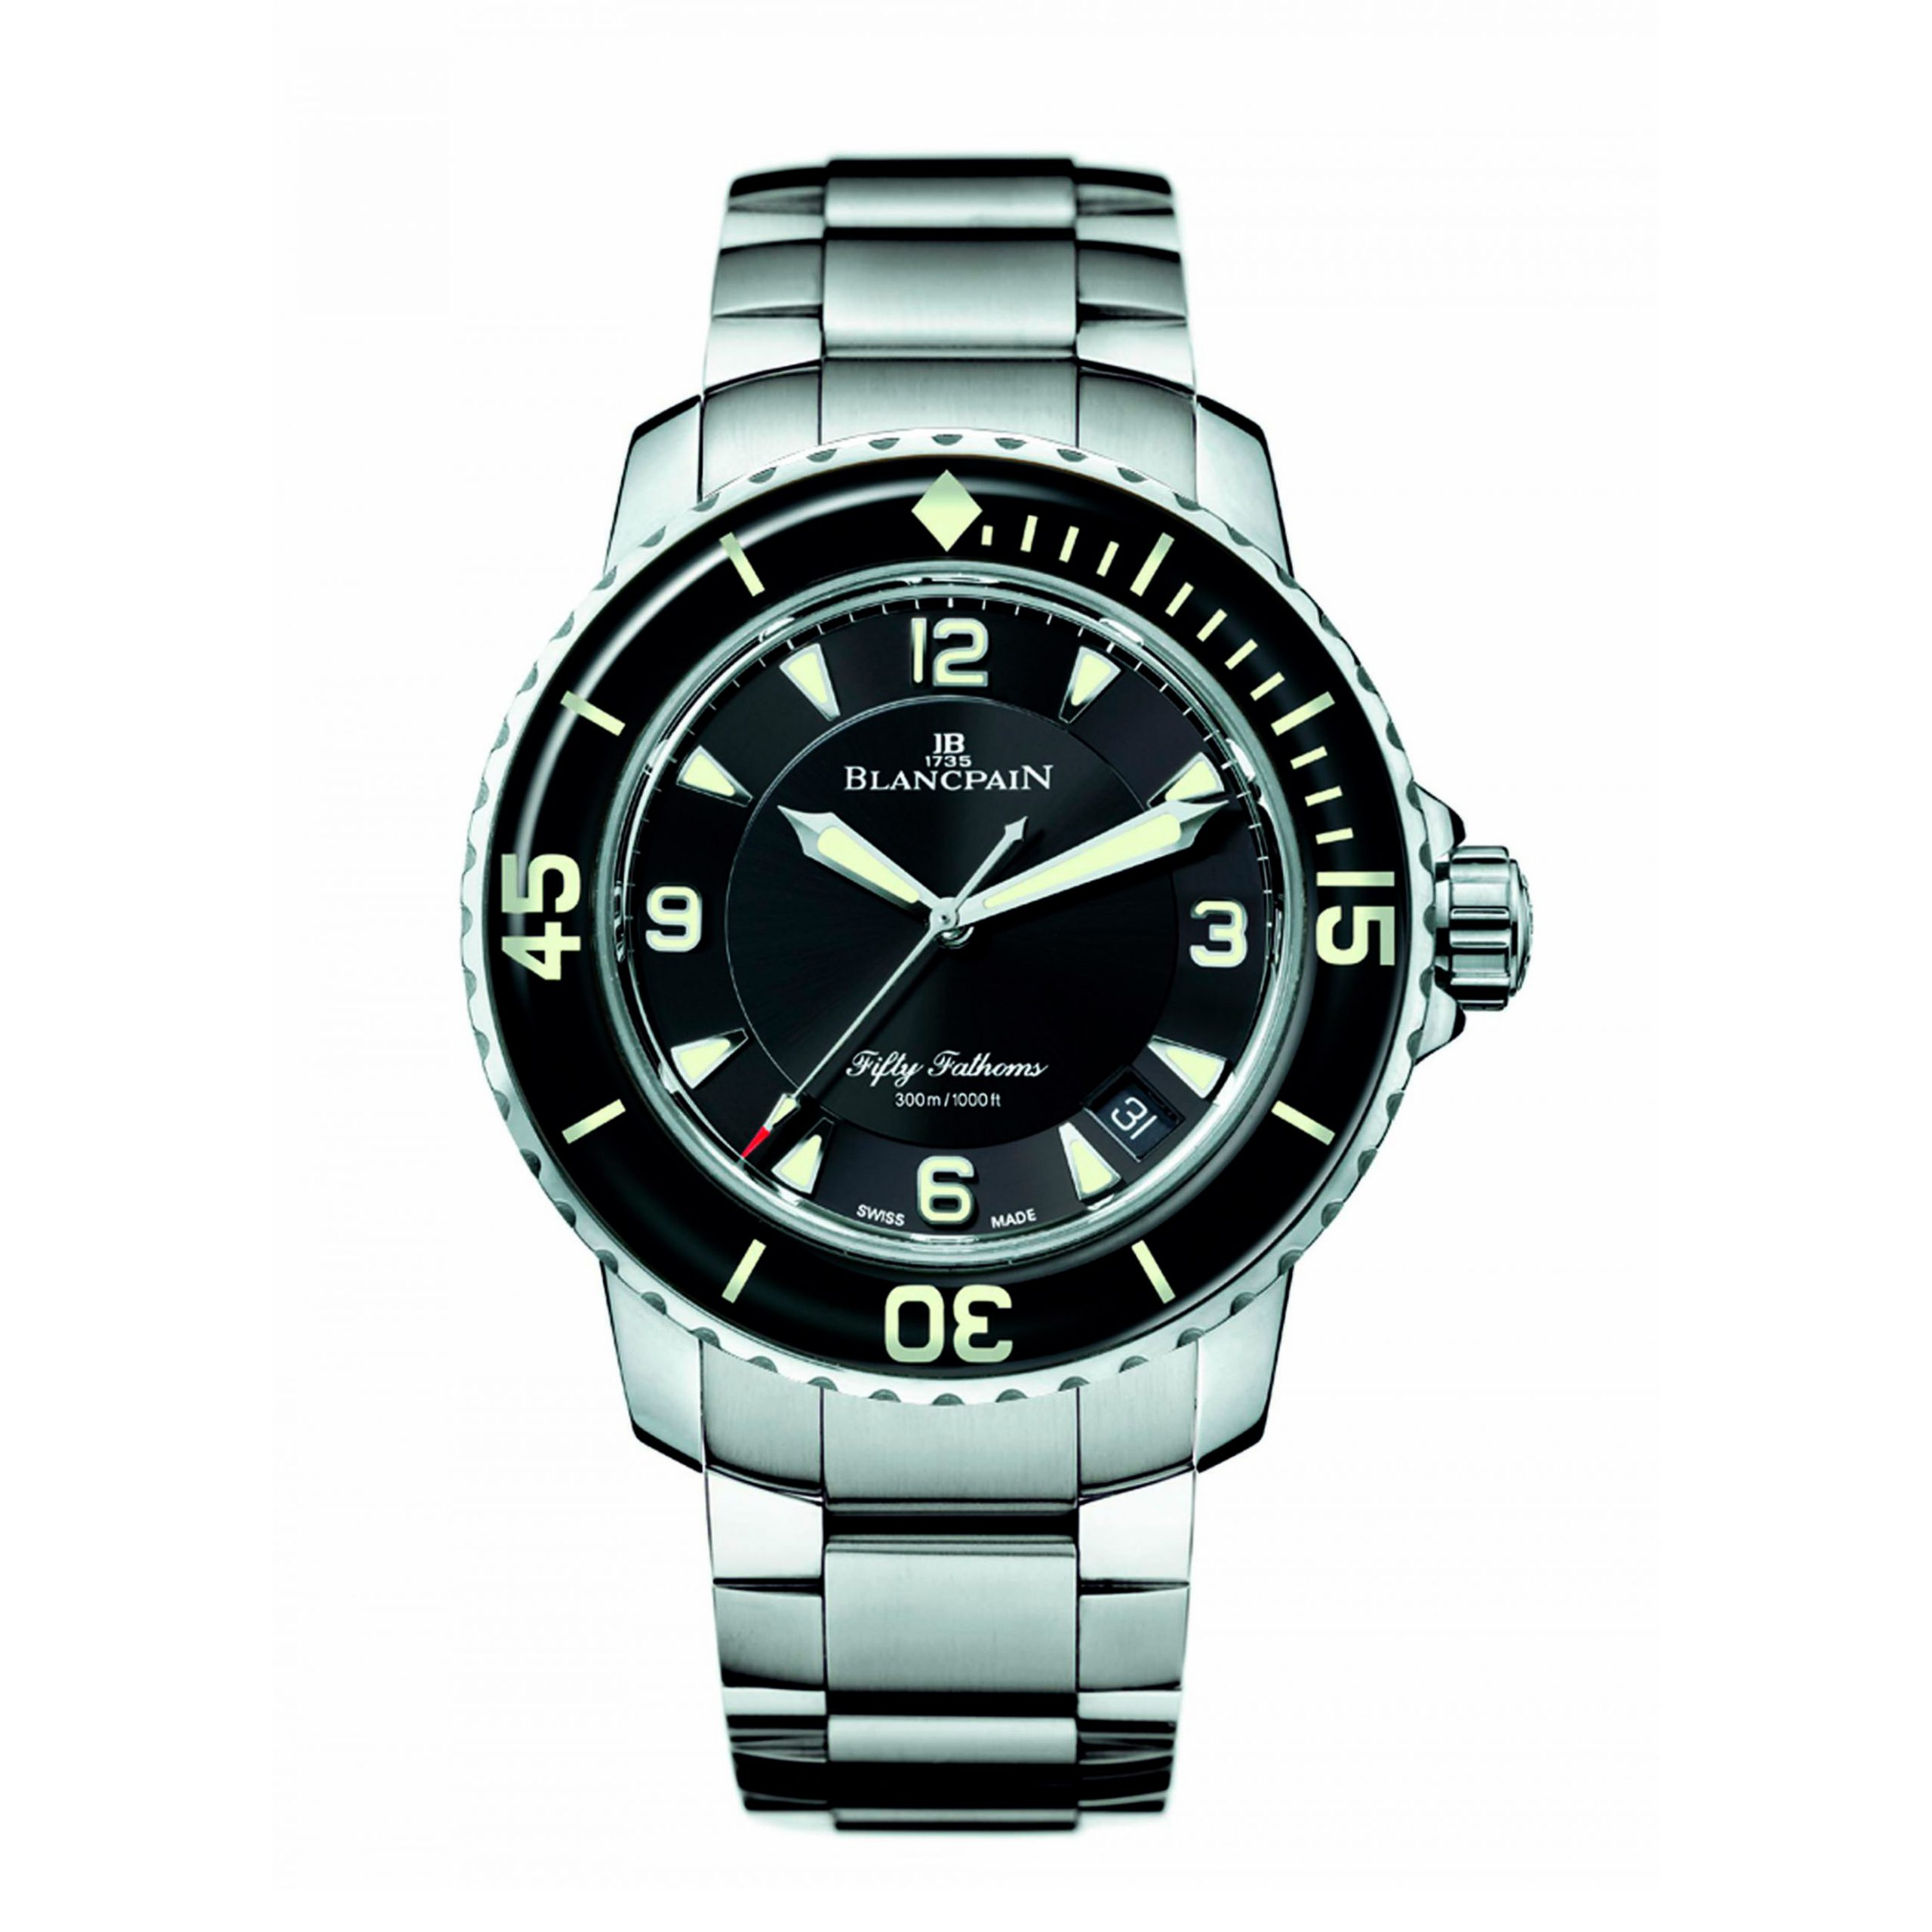 BLANCPAIN Fifty Fathoms  5015 1130 71S